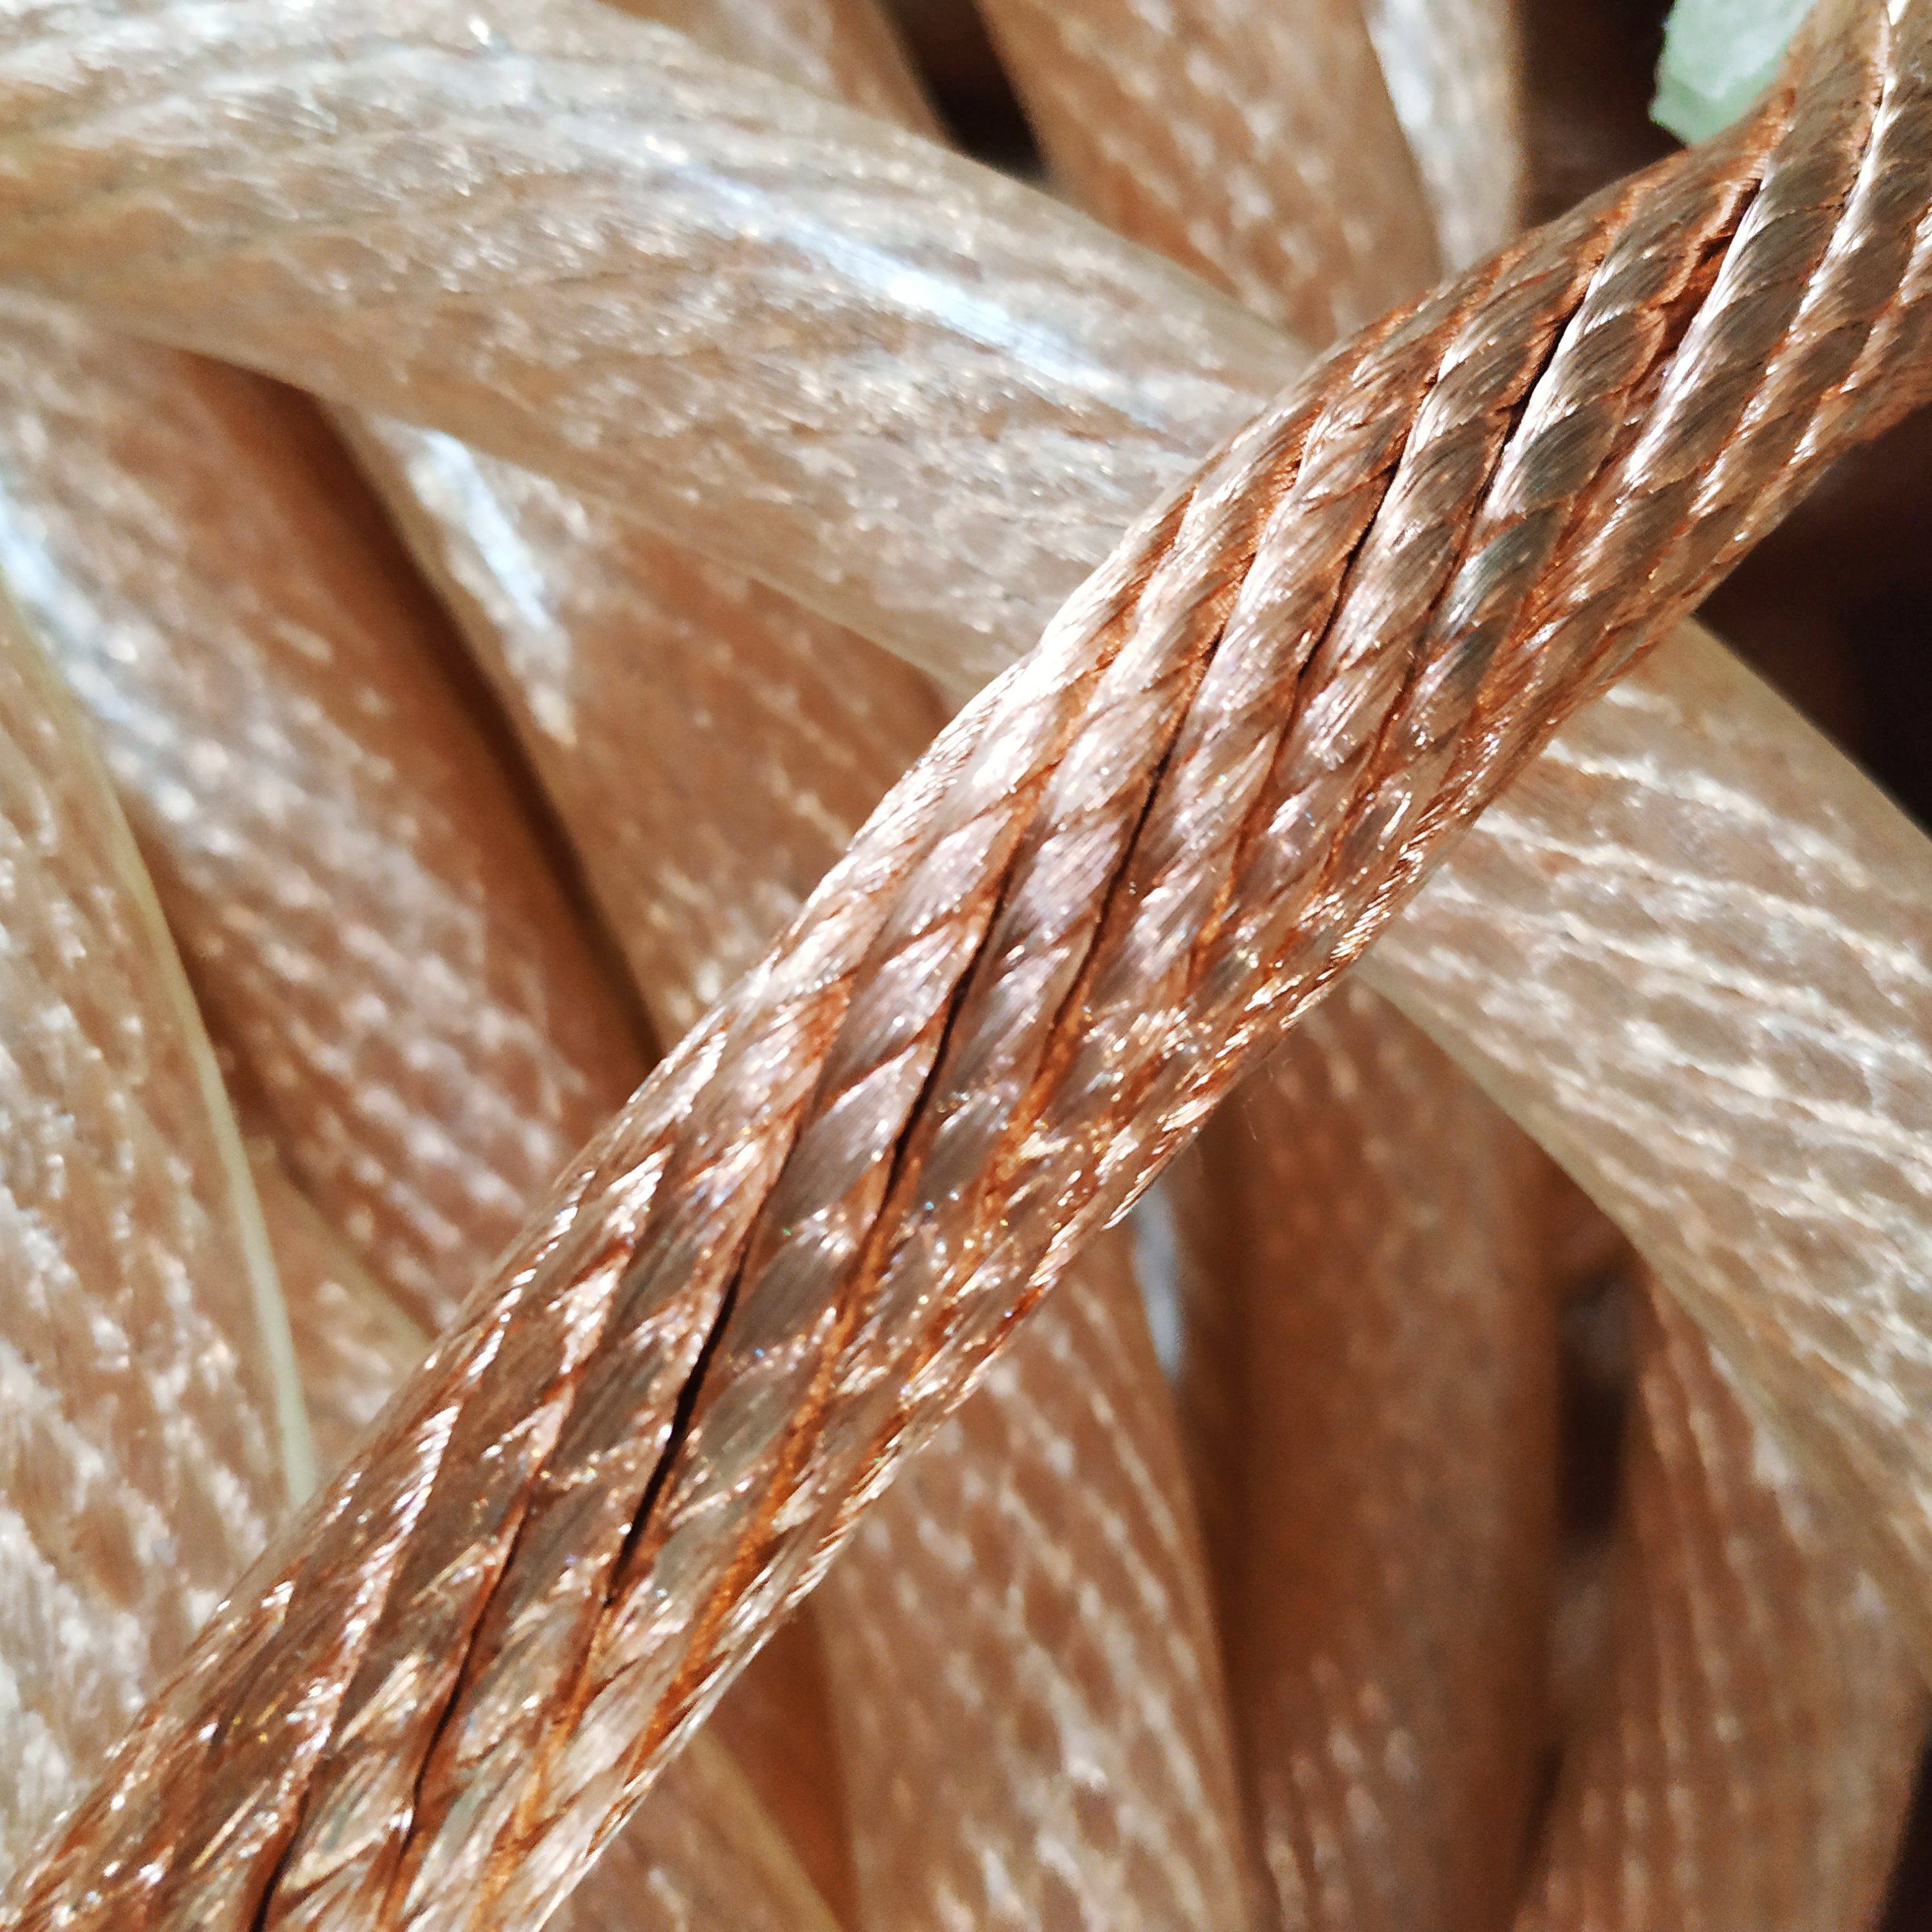 C11000 PVC Insulated Cable Stranded <strong>Copper</strong> 35mm2